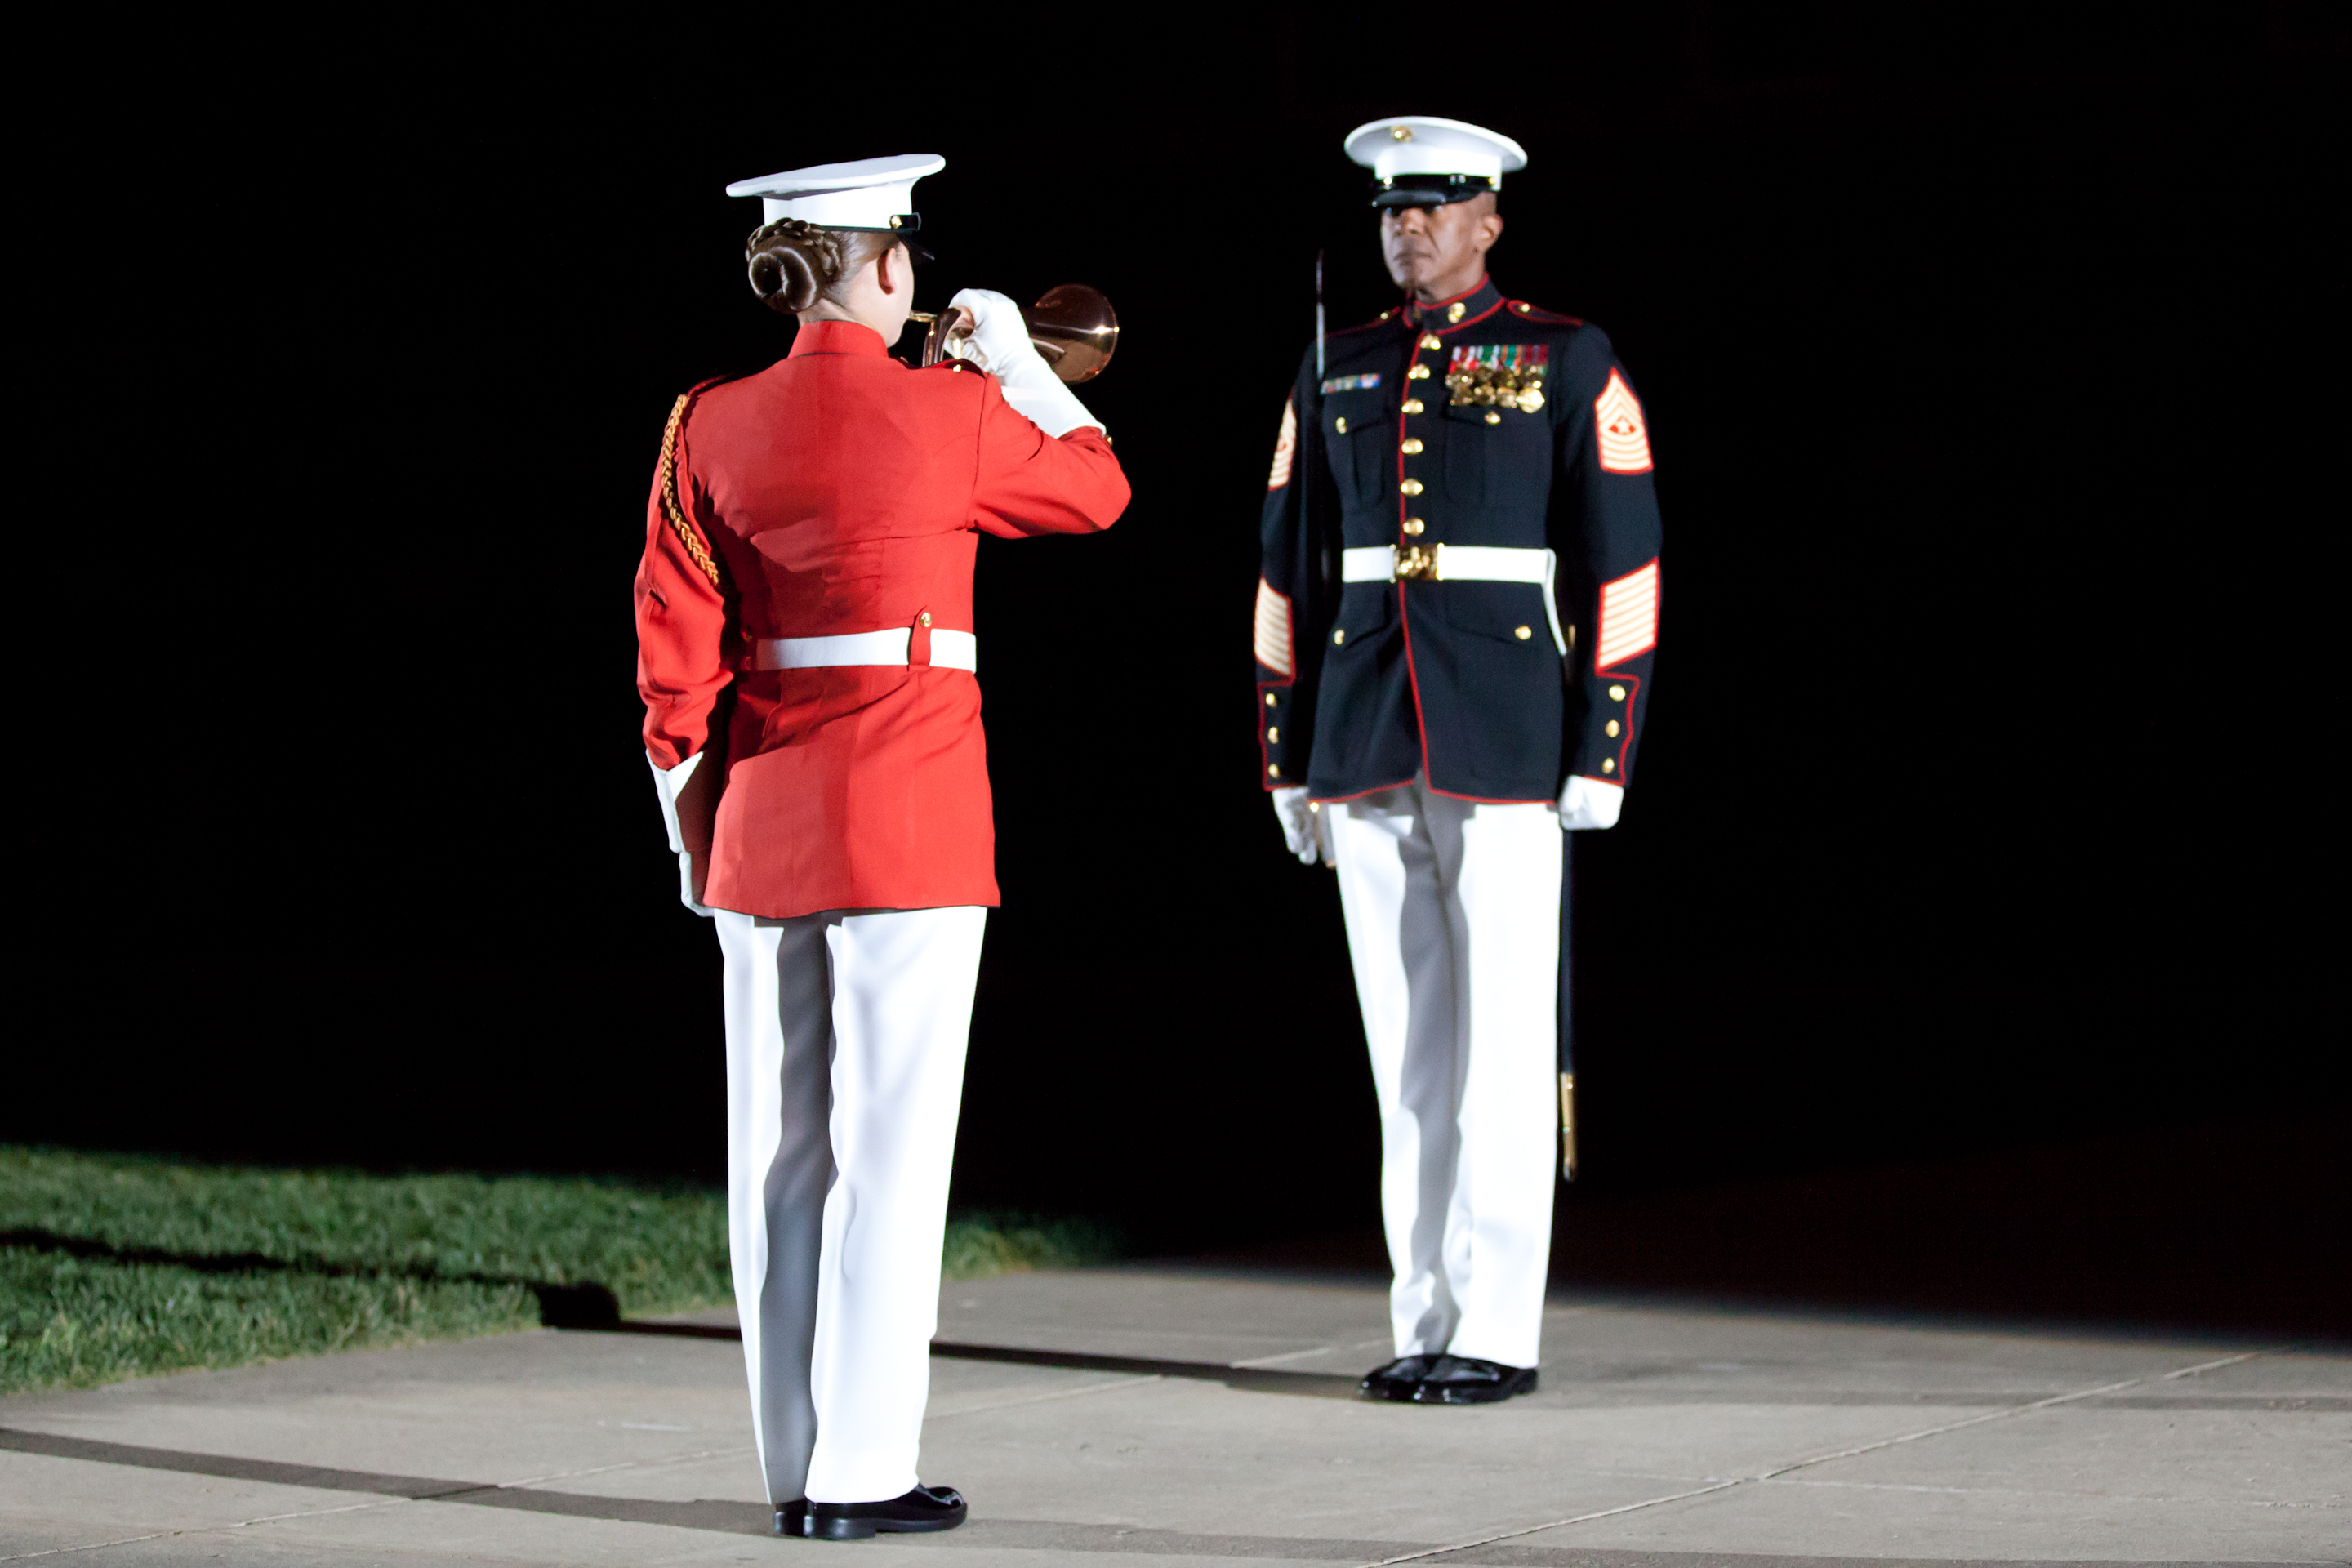 File:A U.S. Marine Corps ceremonial bugler, left, and Sgt ...